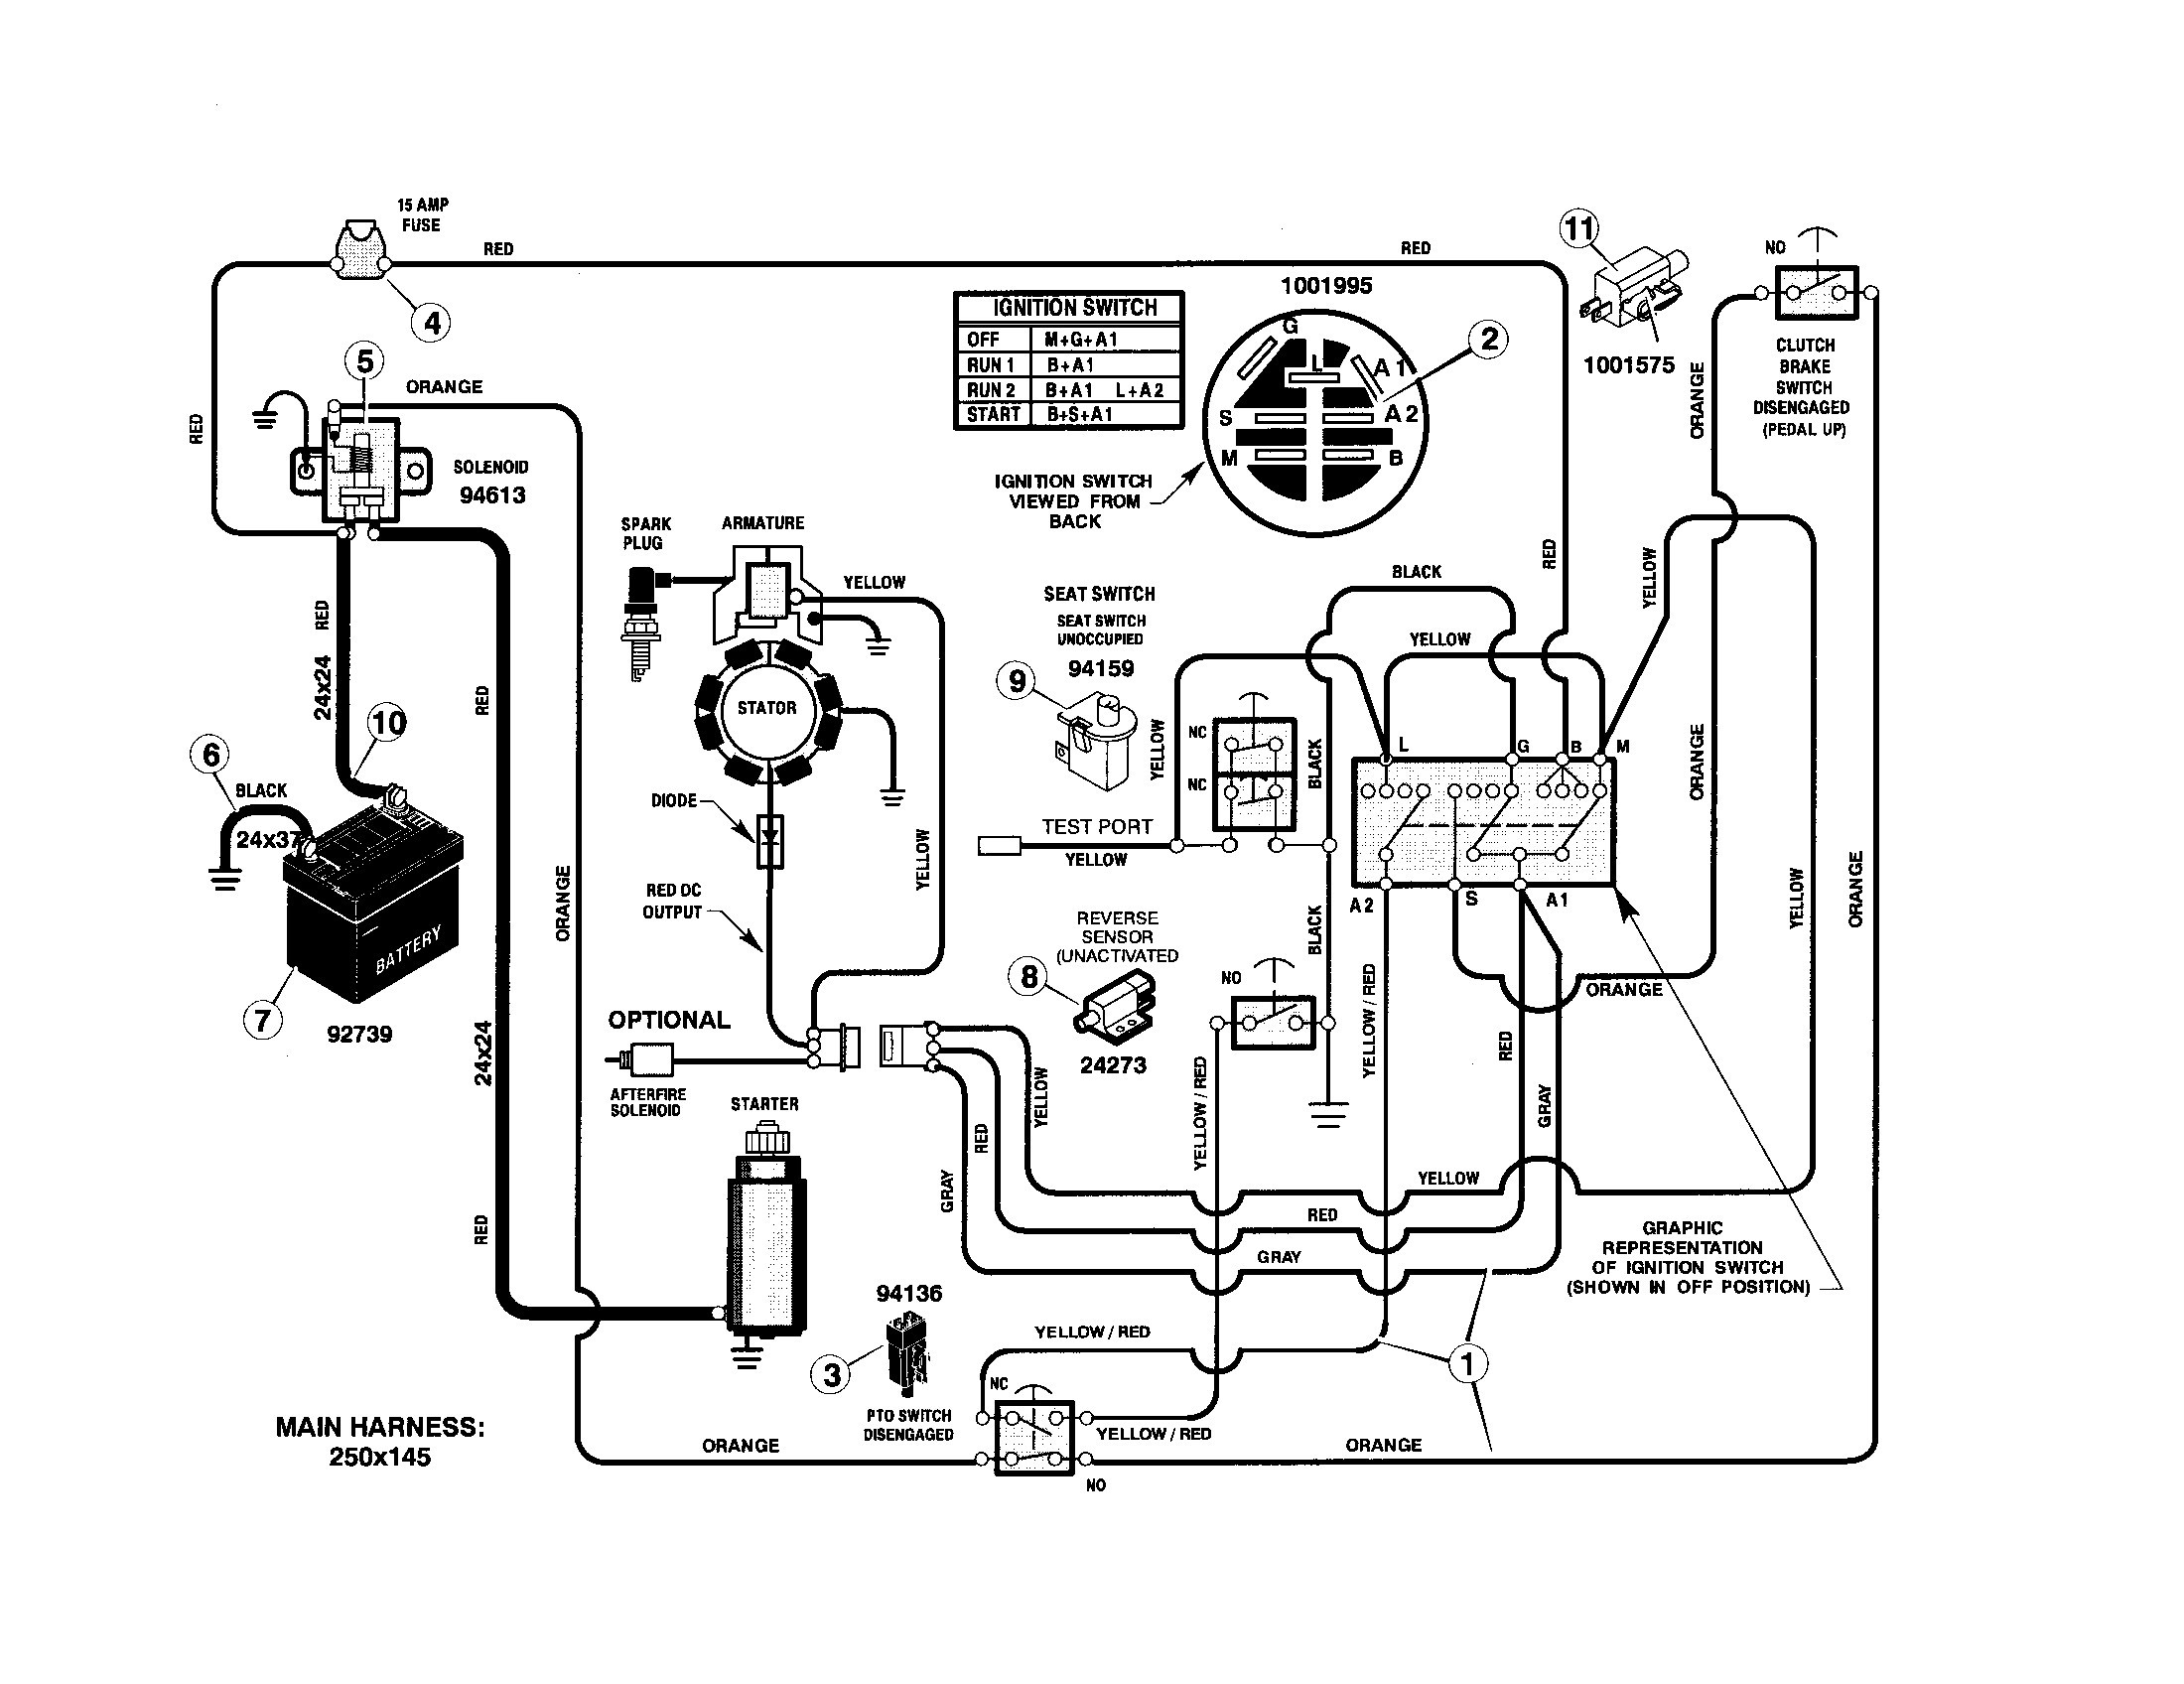 wiring diagram for toro zero turn mower data wiring diagram Toro SS4235 Review